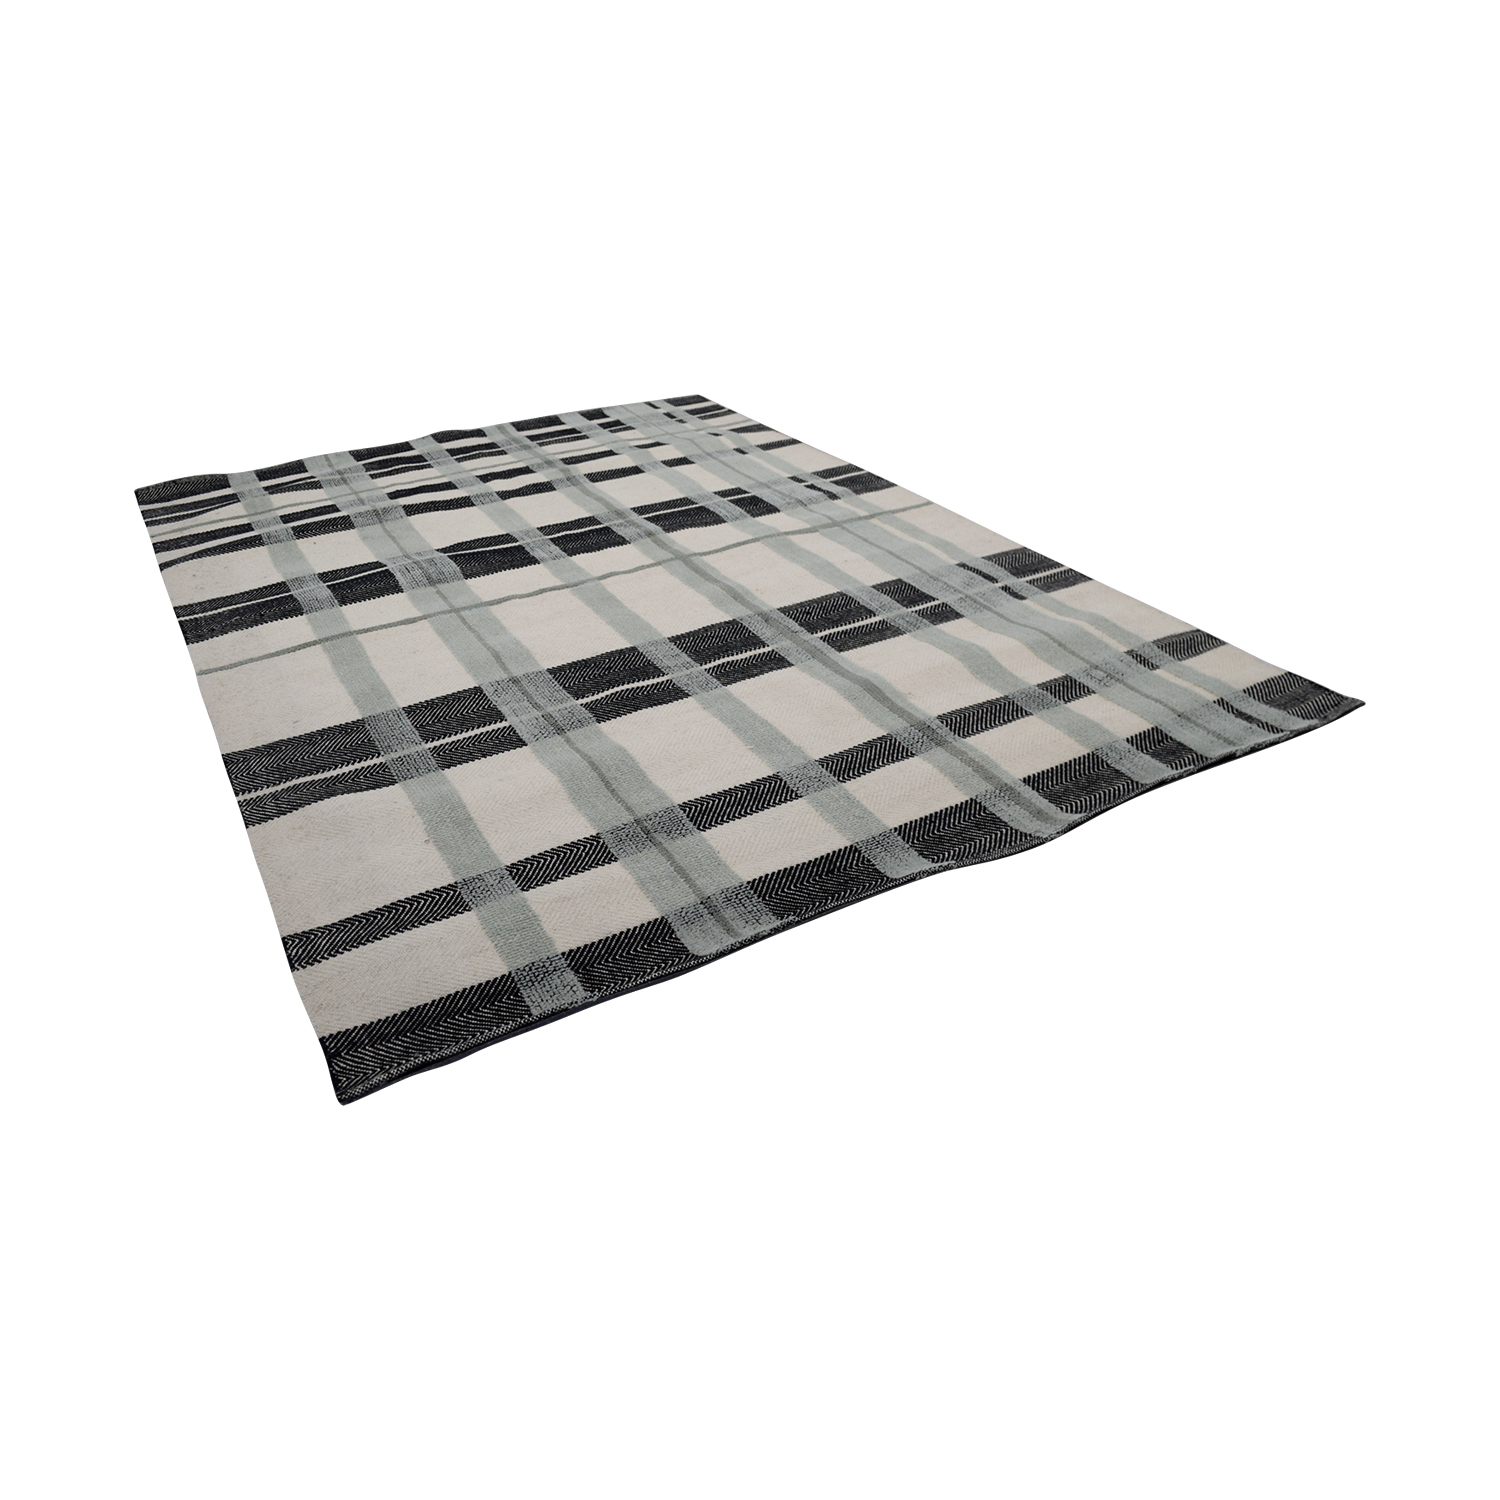 Obeetee Obeetee Criss Cross Rug dimensions